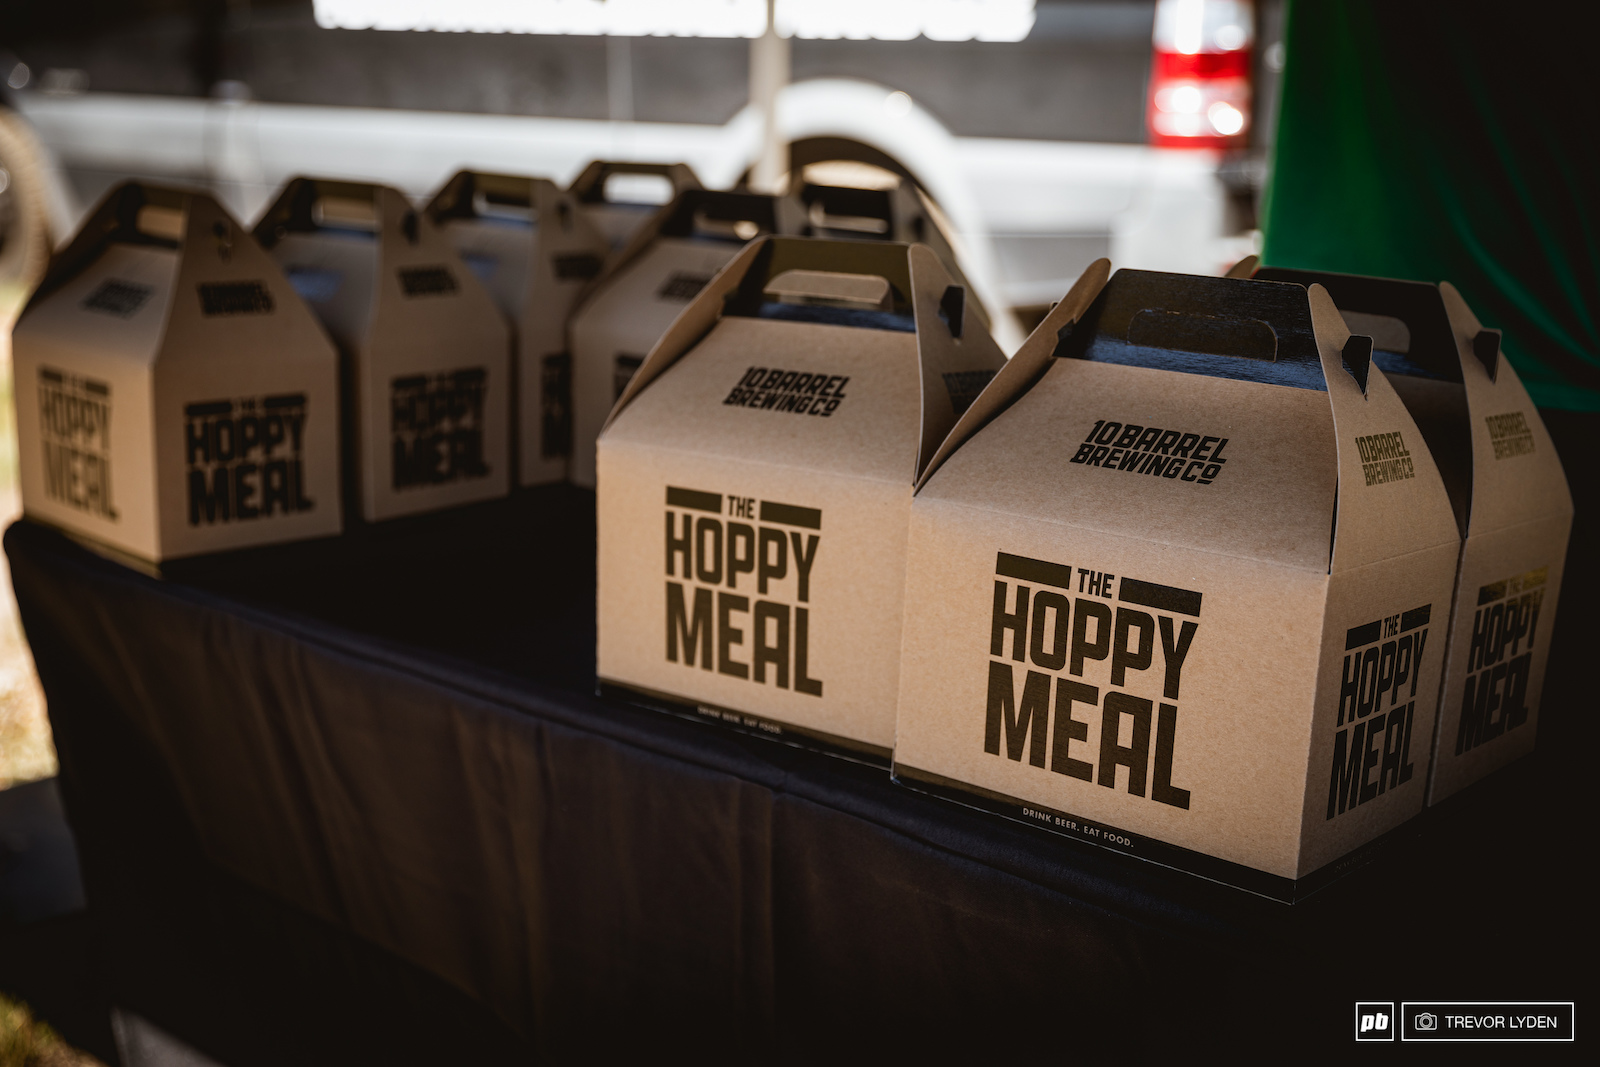 10 Barrel provided Hoppy Meals for the riders after a long day of shredding.